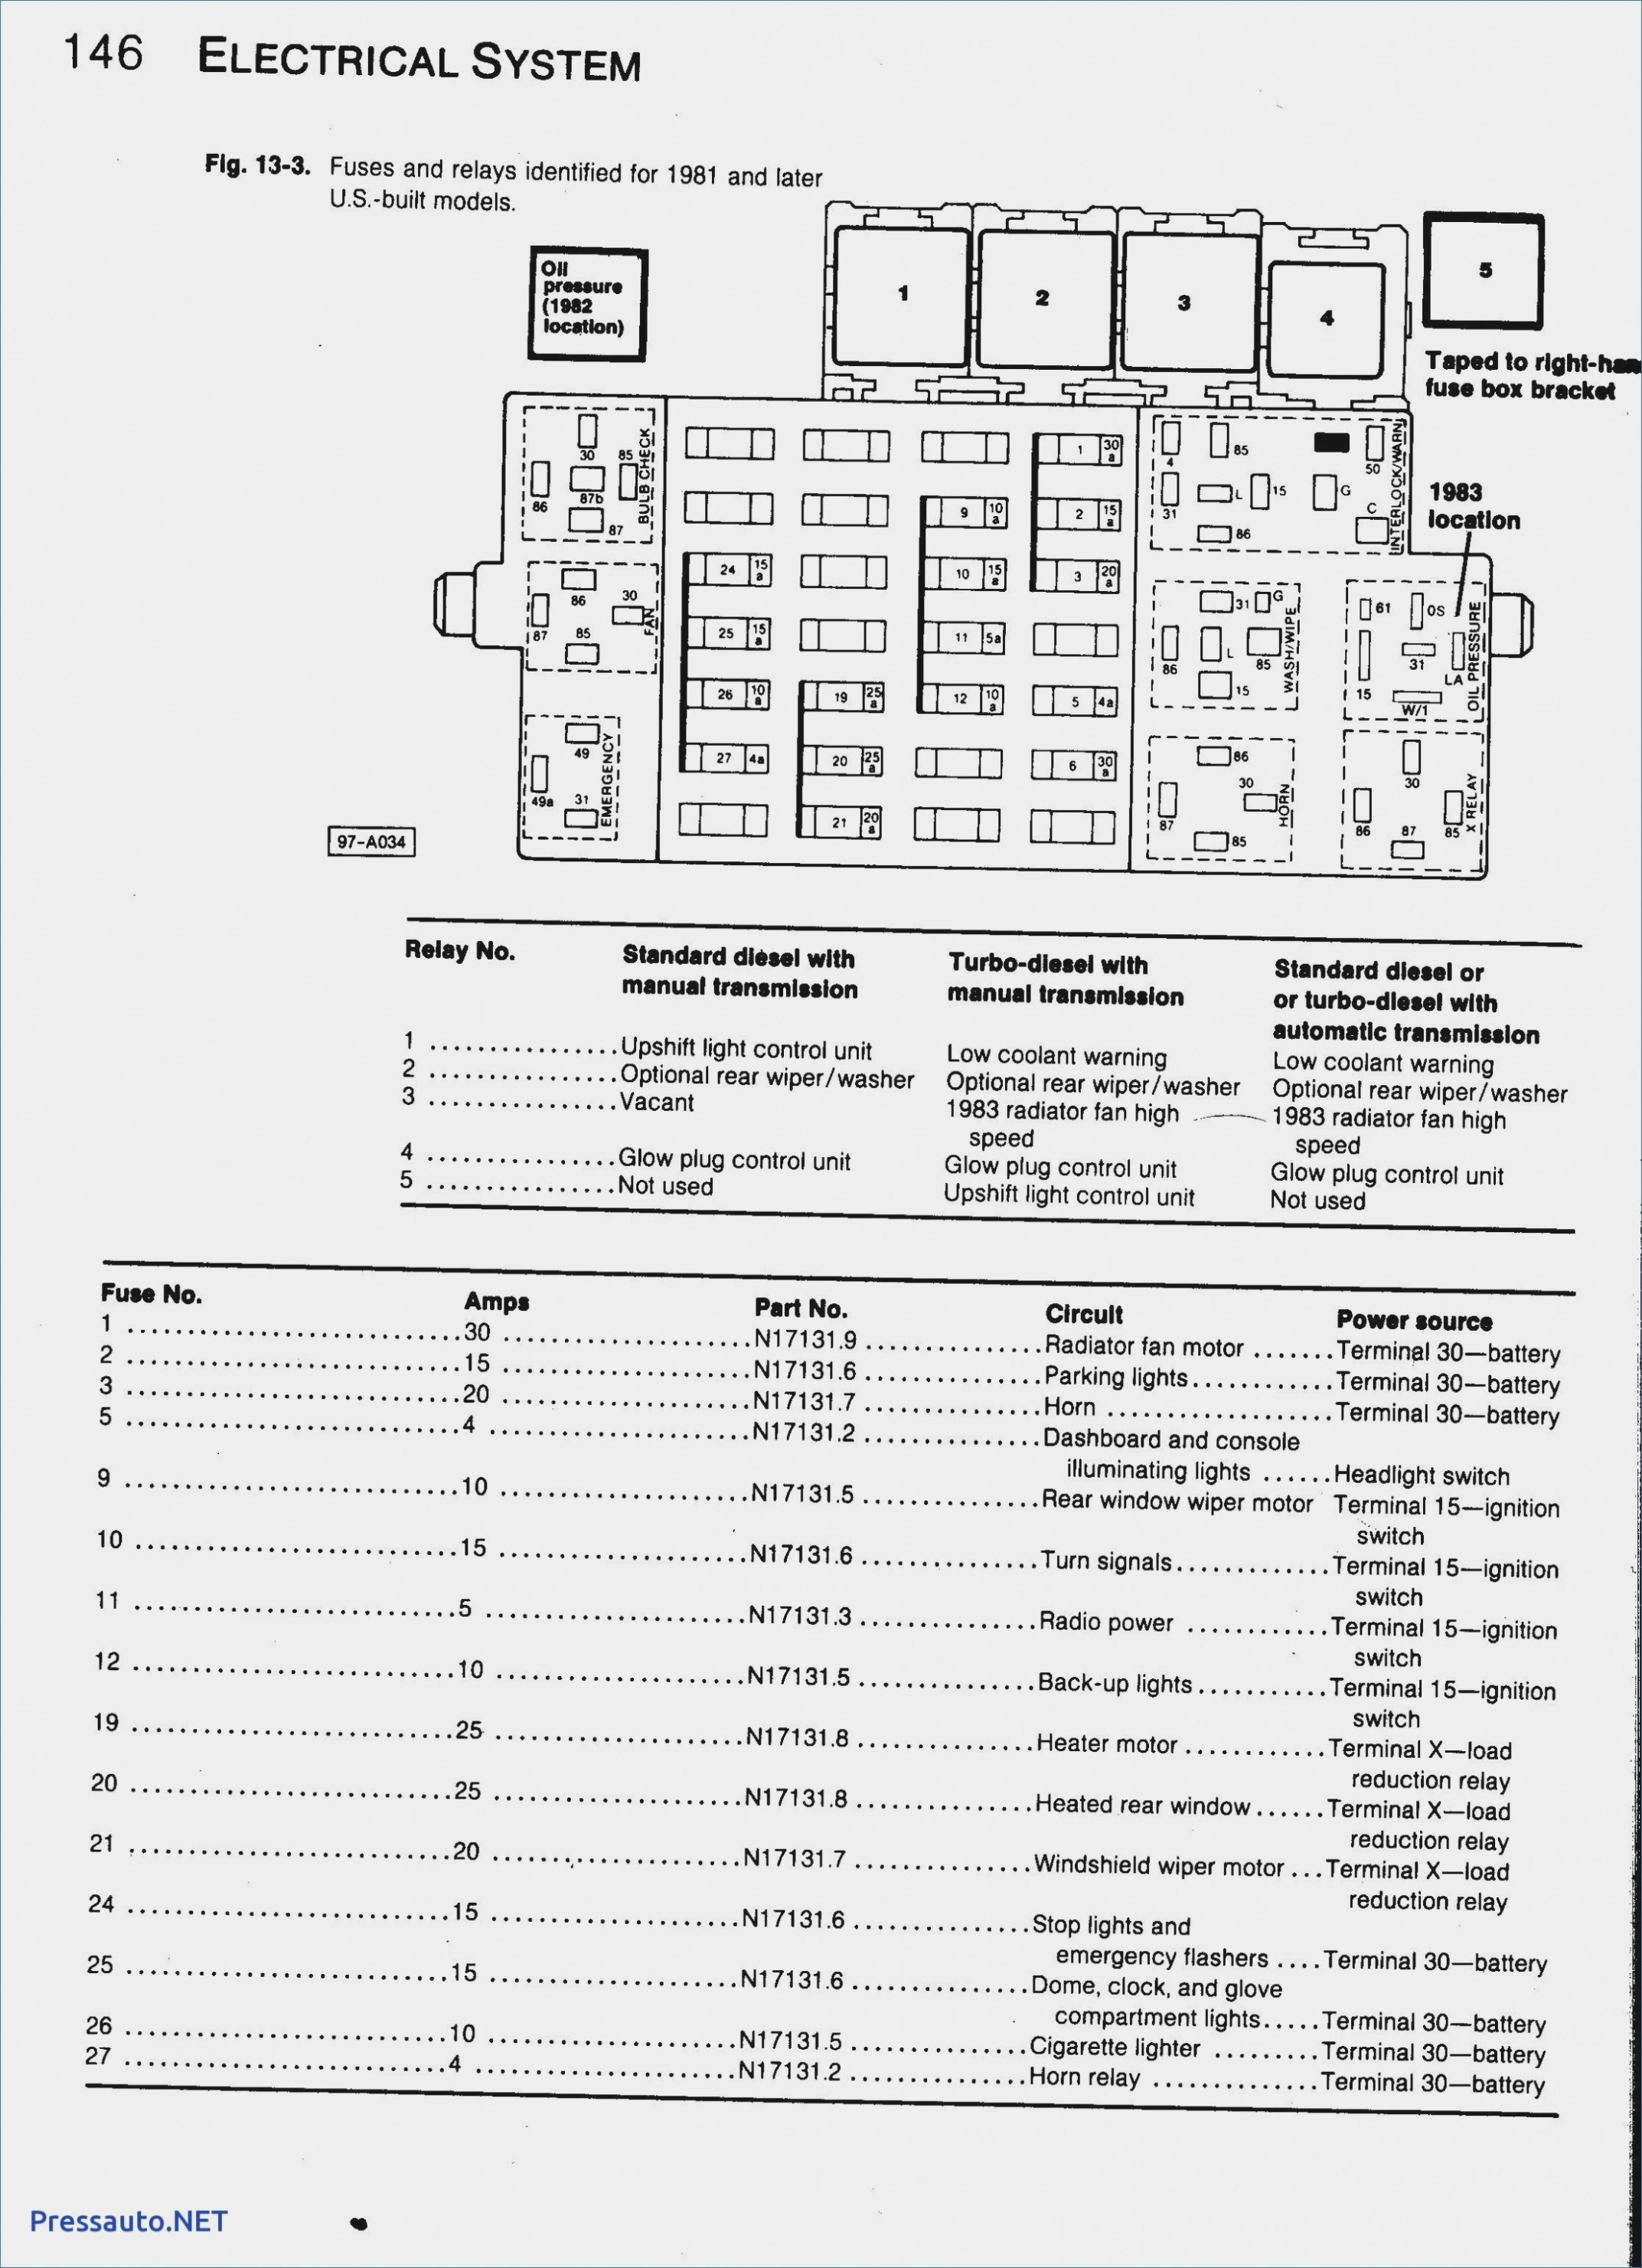 2008 Vw Jetta Fuse Box Diagram 2008 Jetta Fuse Box Diagram Today Diagram Database